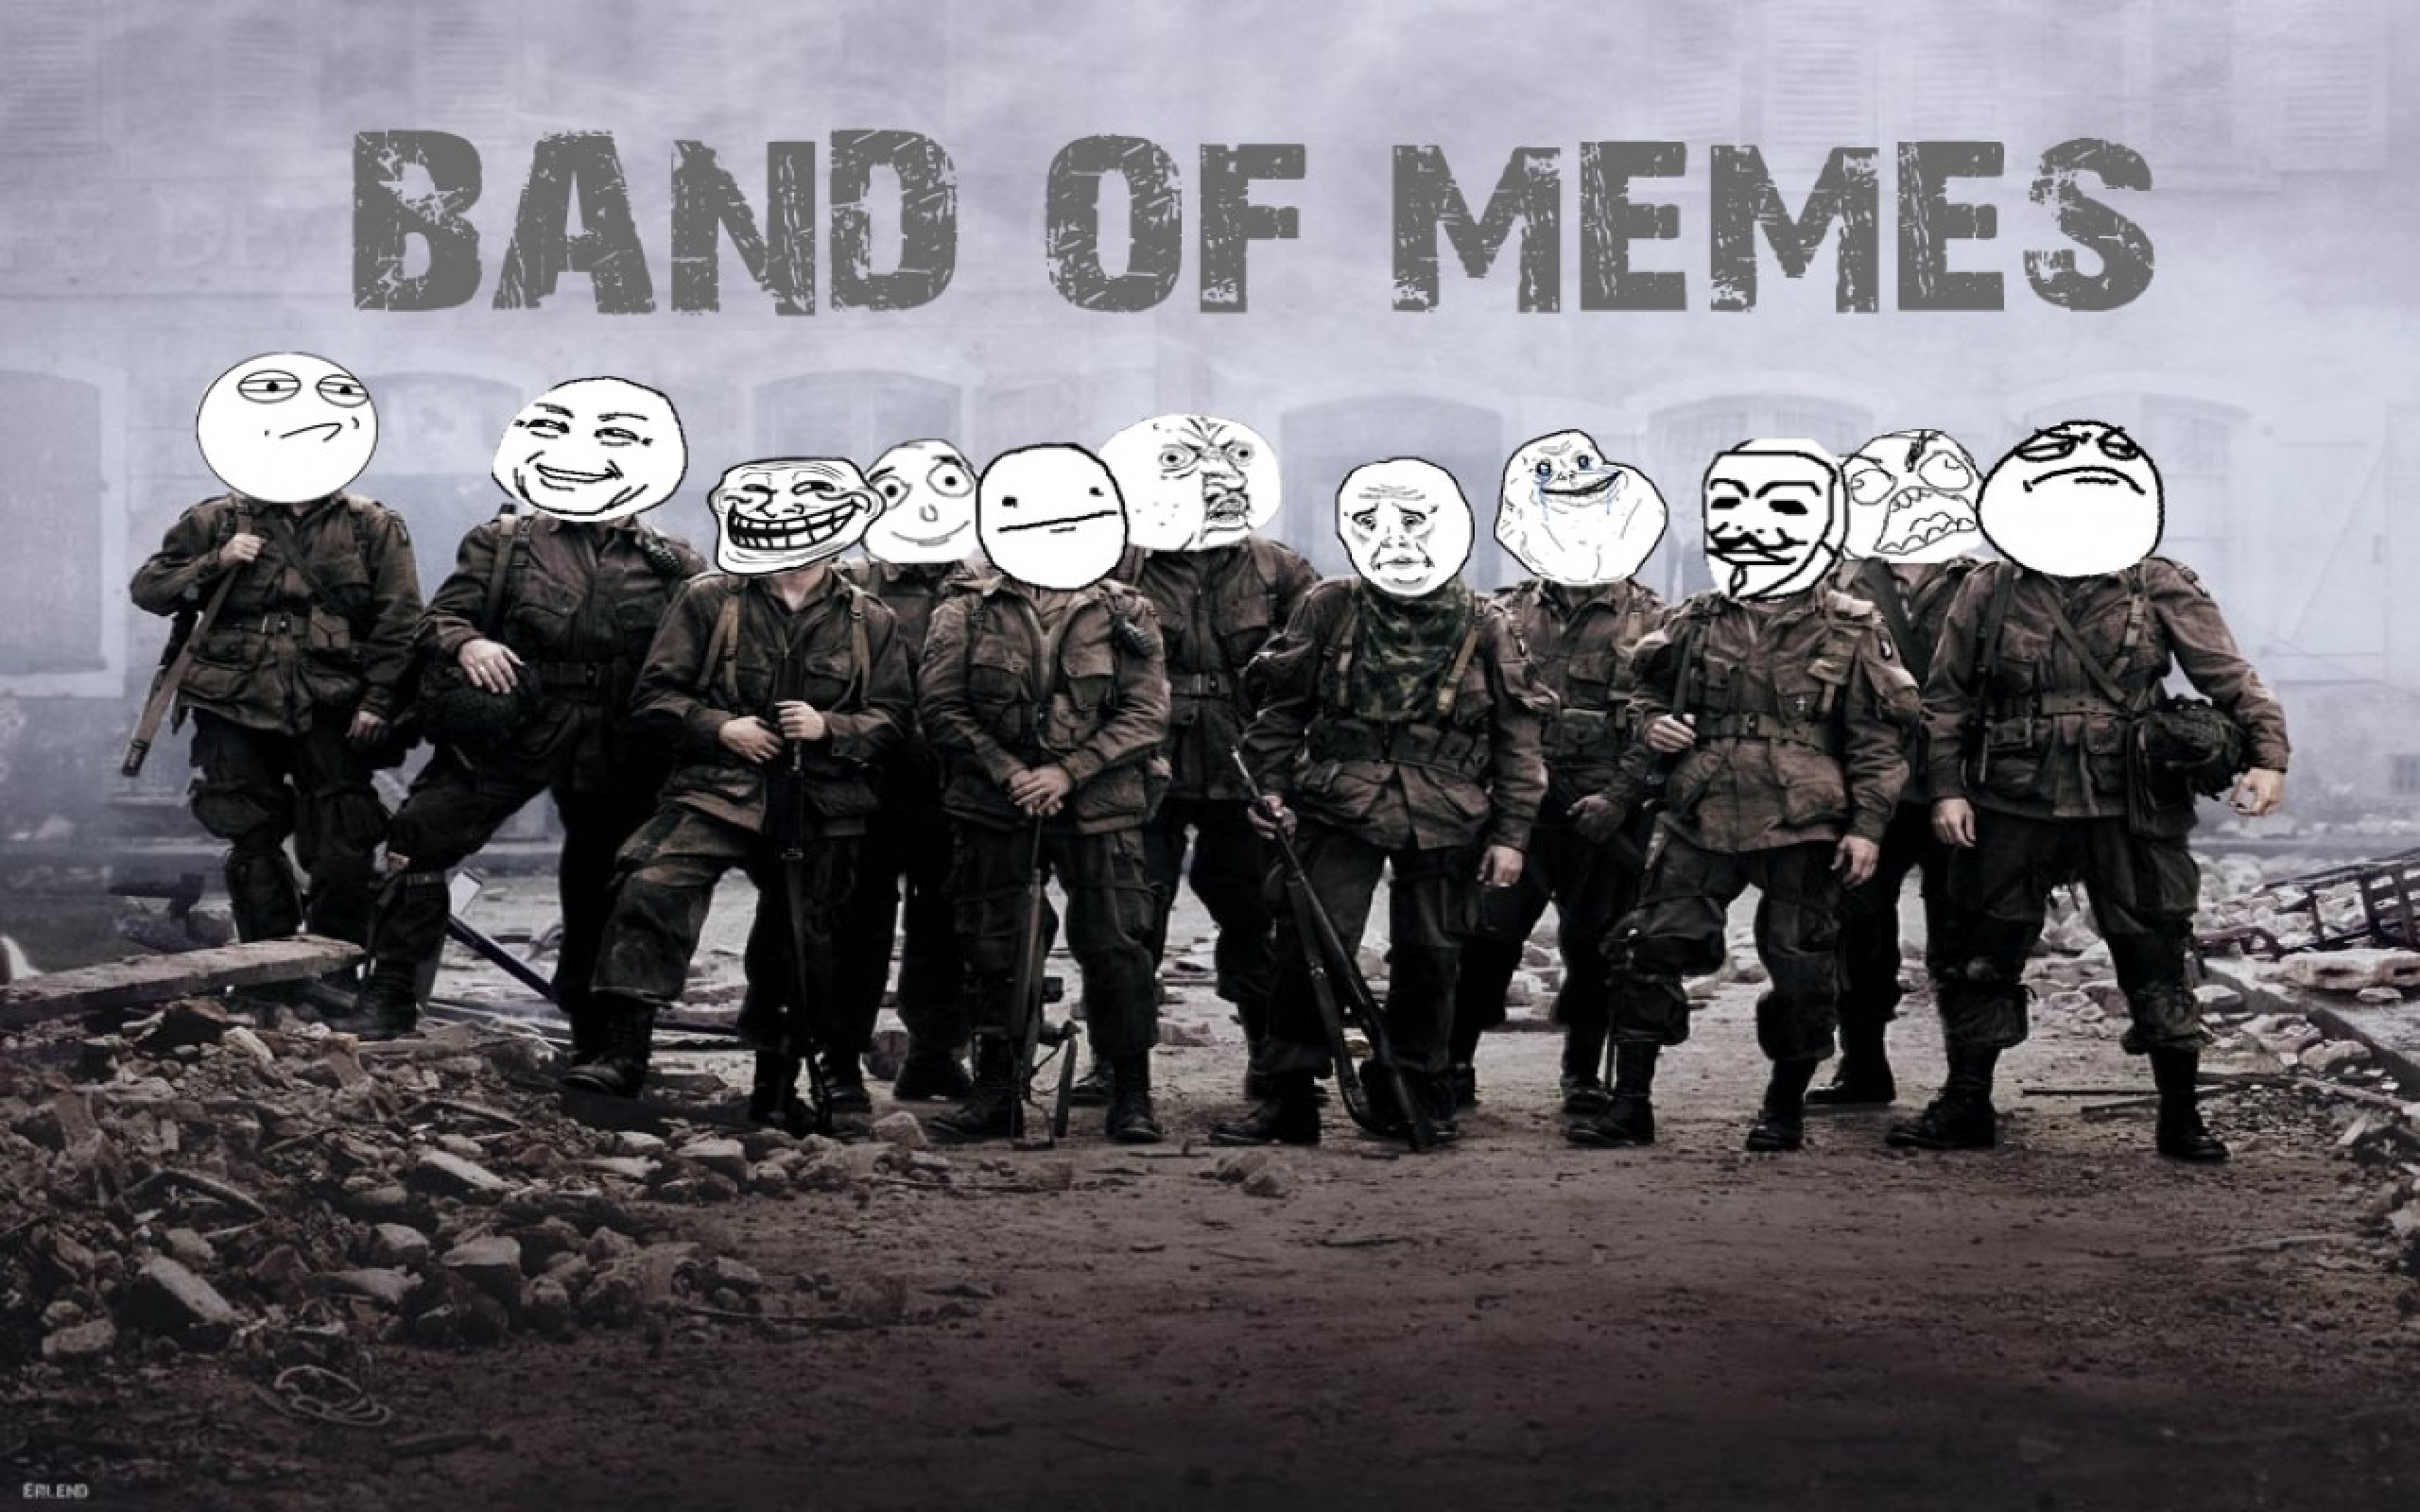 guns_military_humor_funny_meme_lulz_trolling_trollface_band_forever_alone_trolls_me_gusta_efg_ragefa_High Resolution Wallpaper_2560x1600_www.wallpaperhi.com